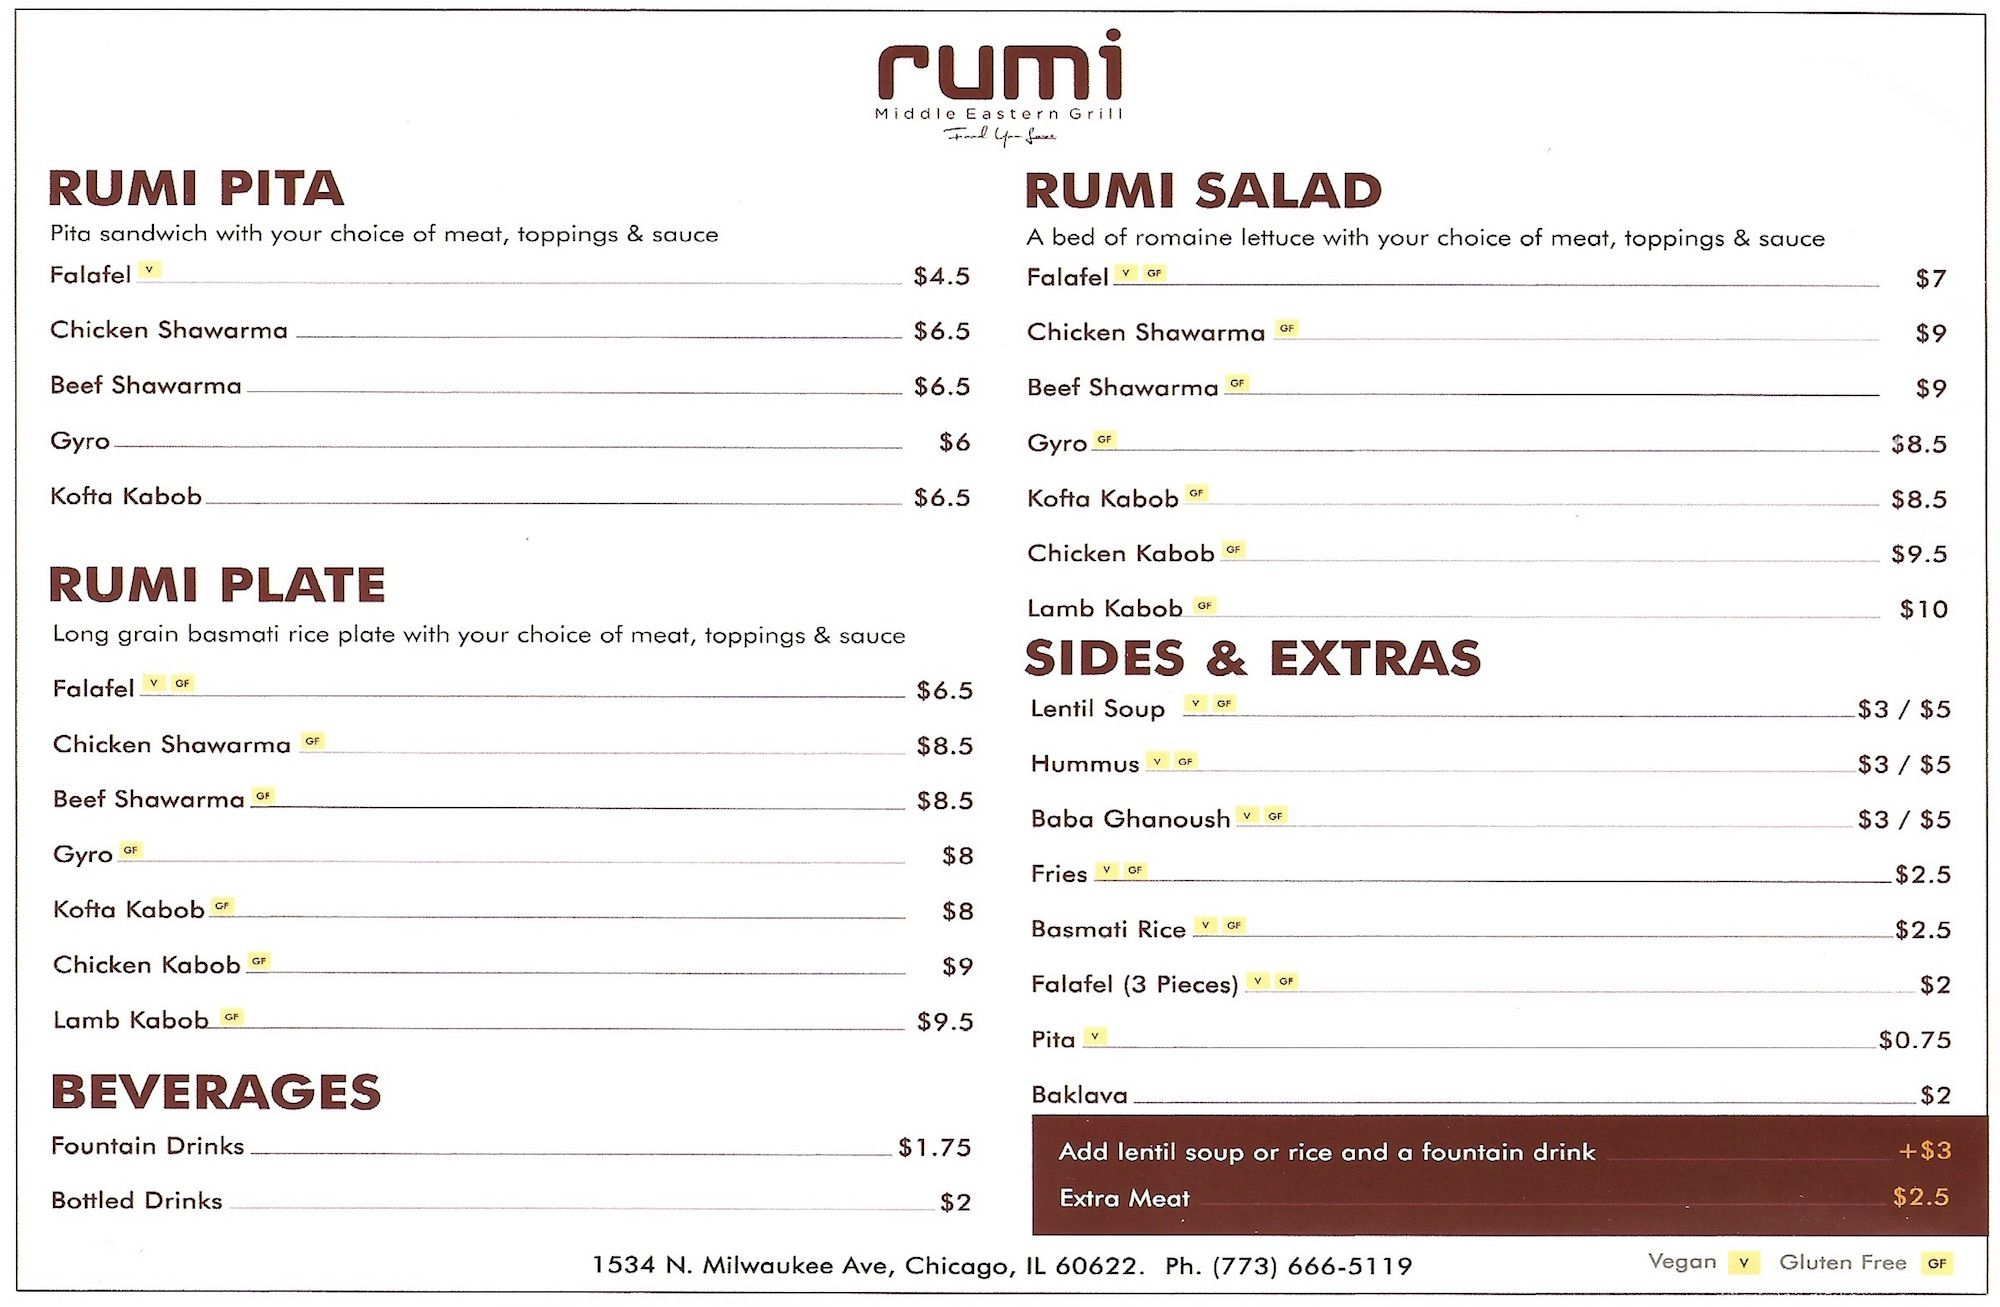 Rumi Middle Eastern Grill Menu Chicago Scanned Menu With